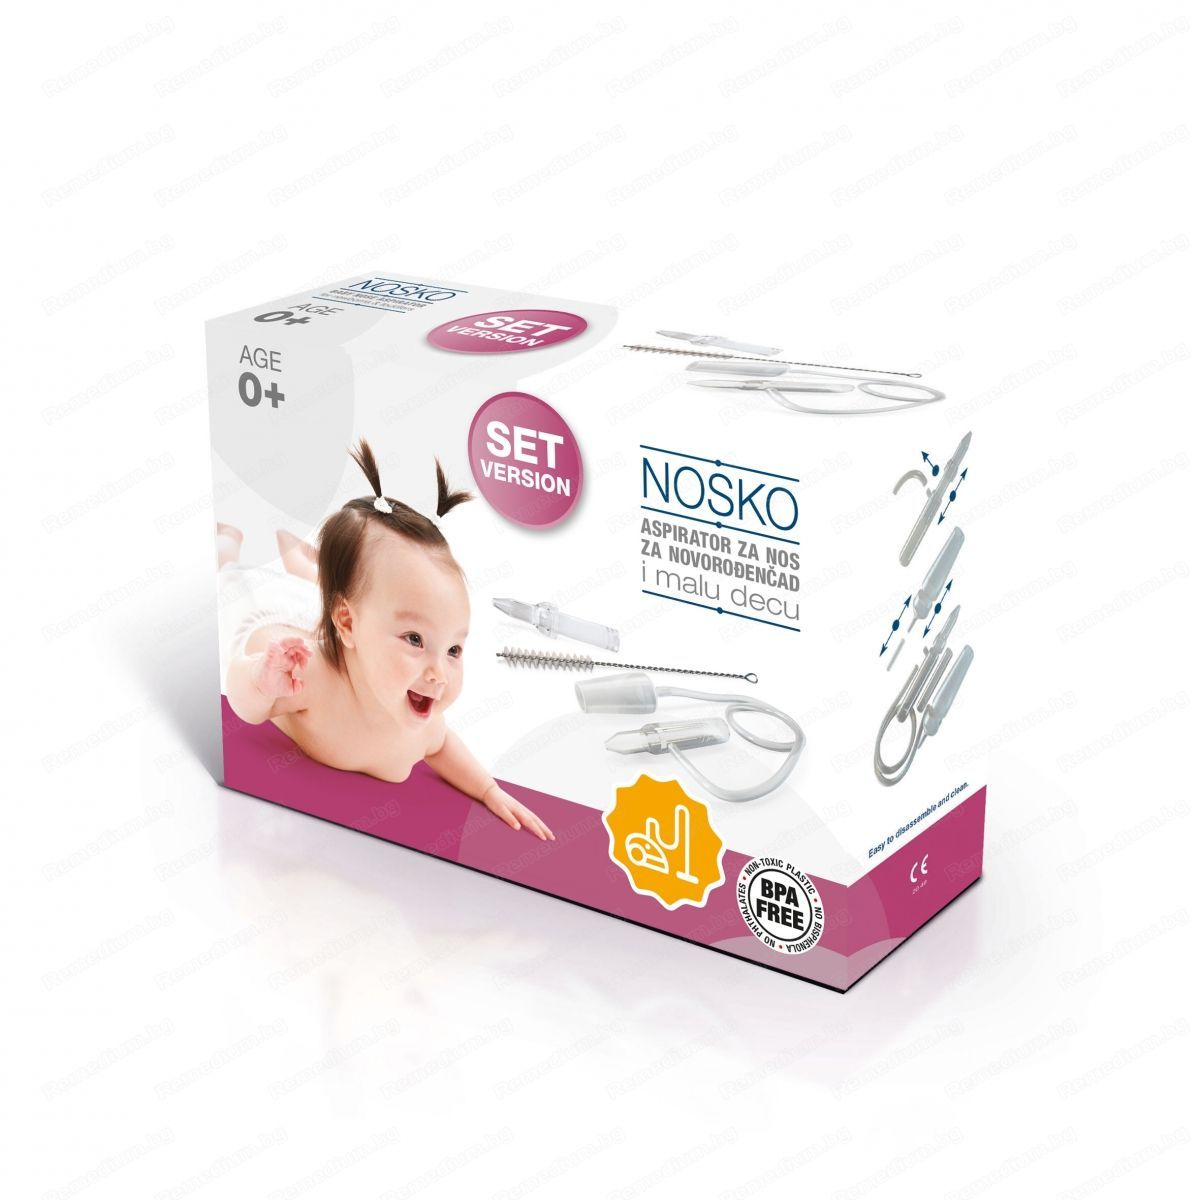 Baby nose aspirator set for newborns and toddlers for vacuum cleaner 0+ BPA free